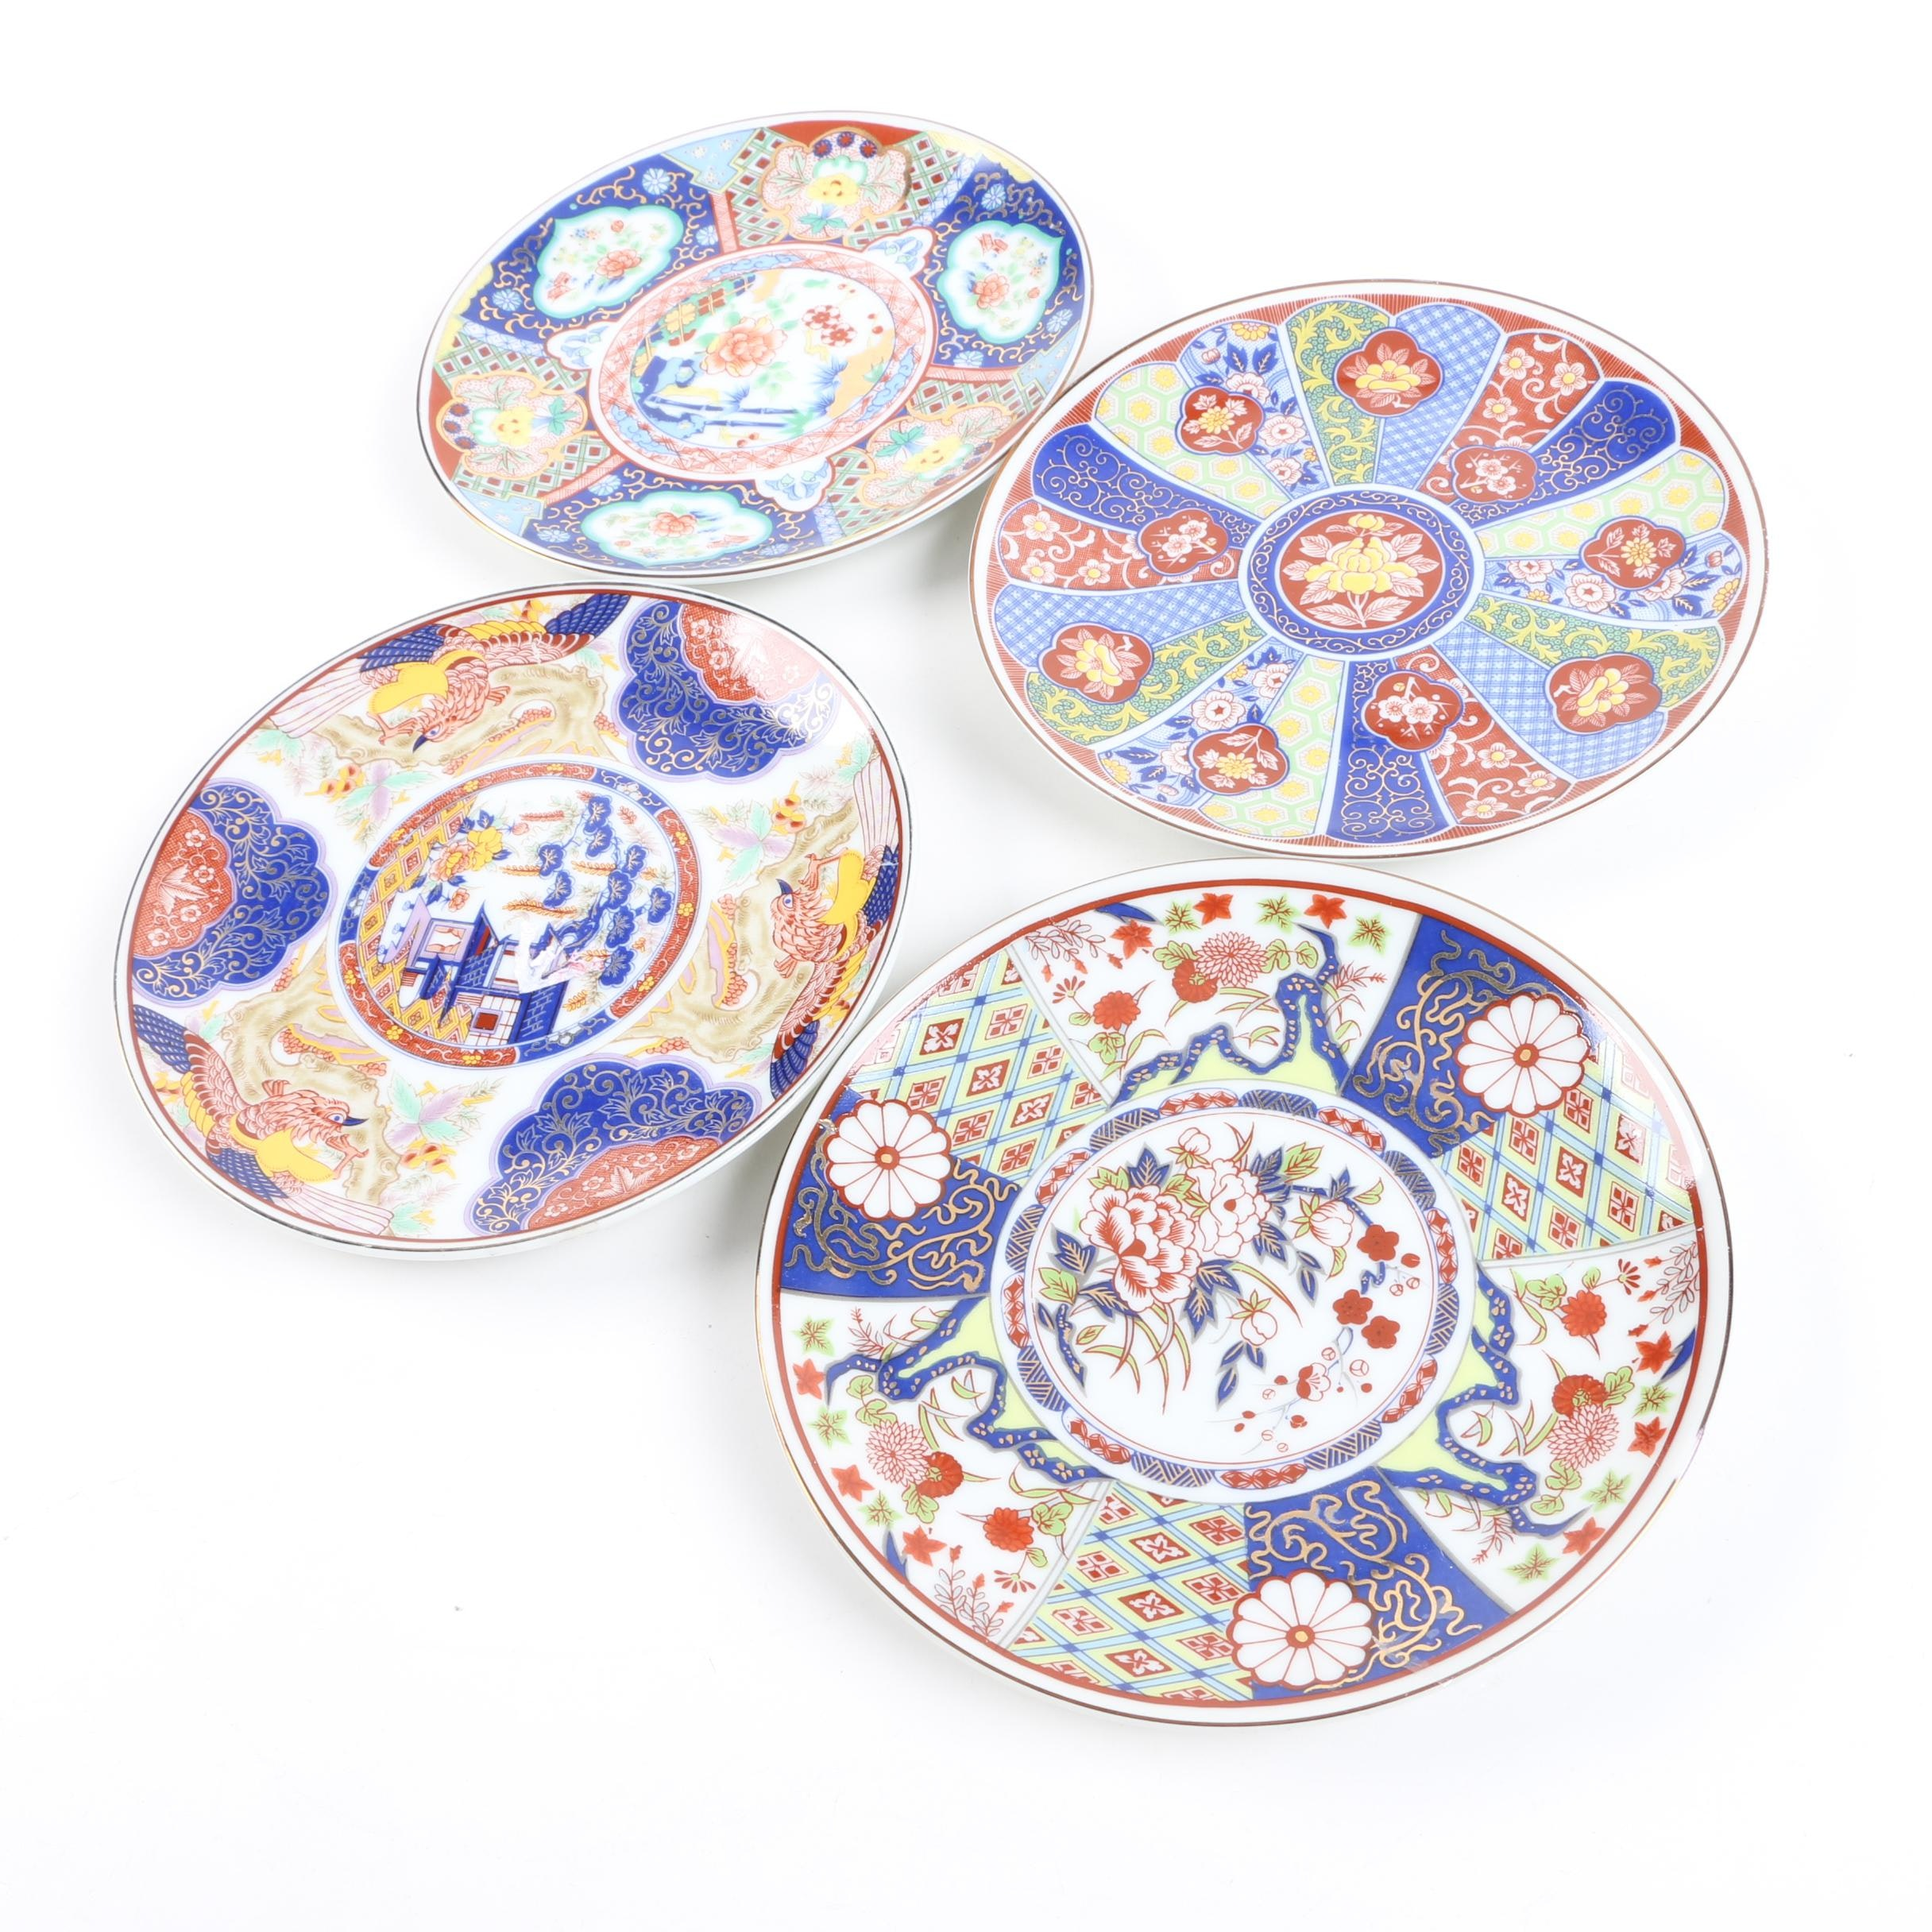 Set of Japanese Imari Ware Bread and Butter Plates